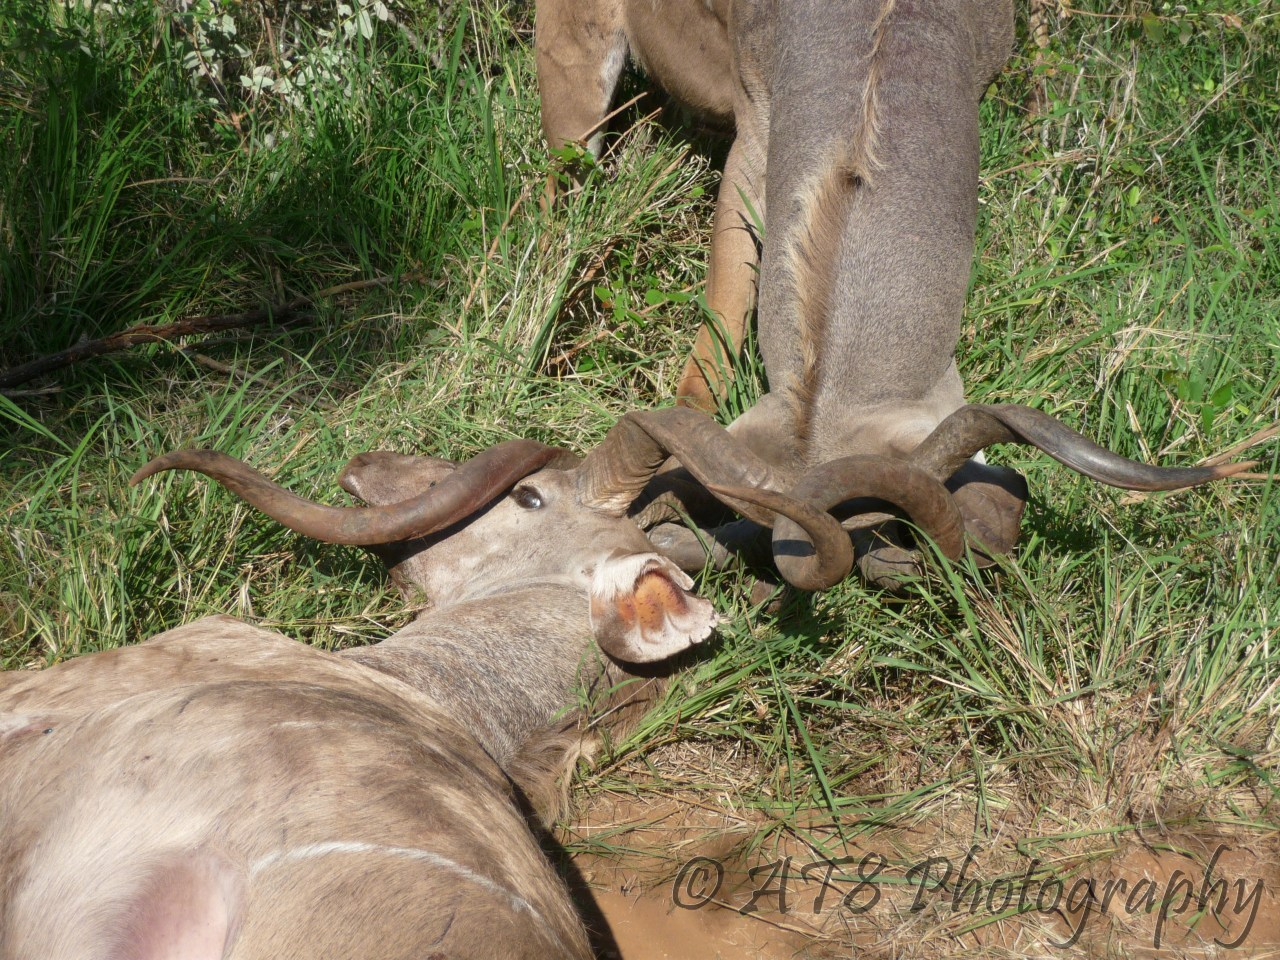 African Animals with Long Horns http://afrography.com/2013/02/23/locking-horns/